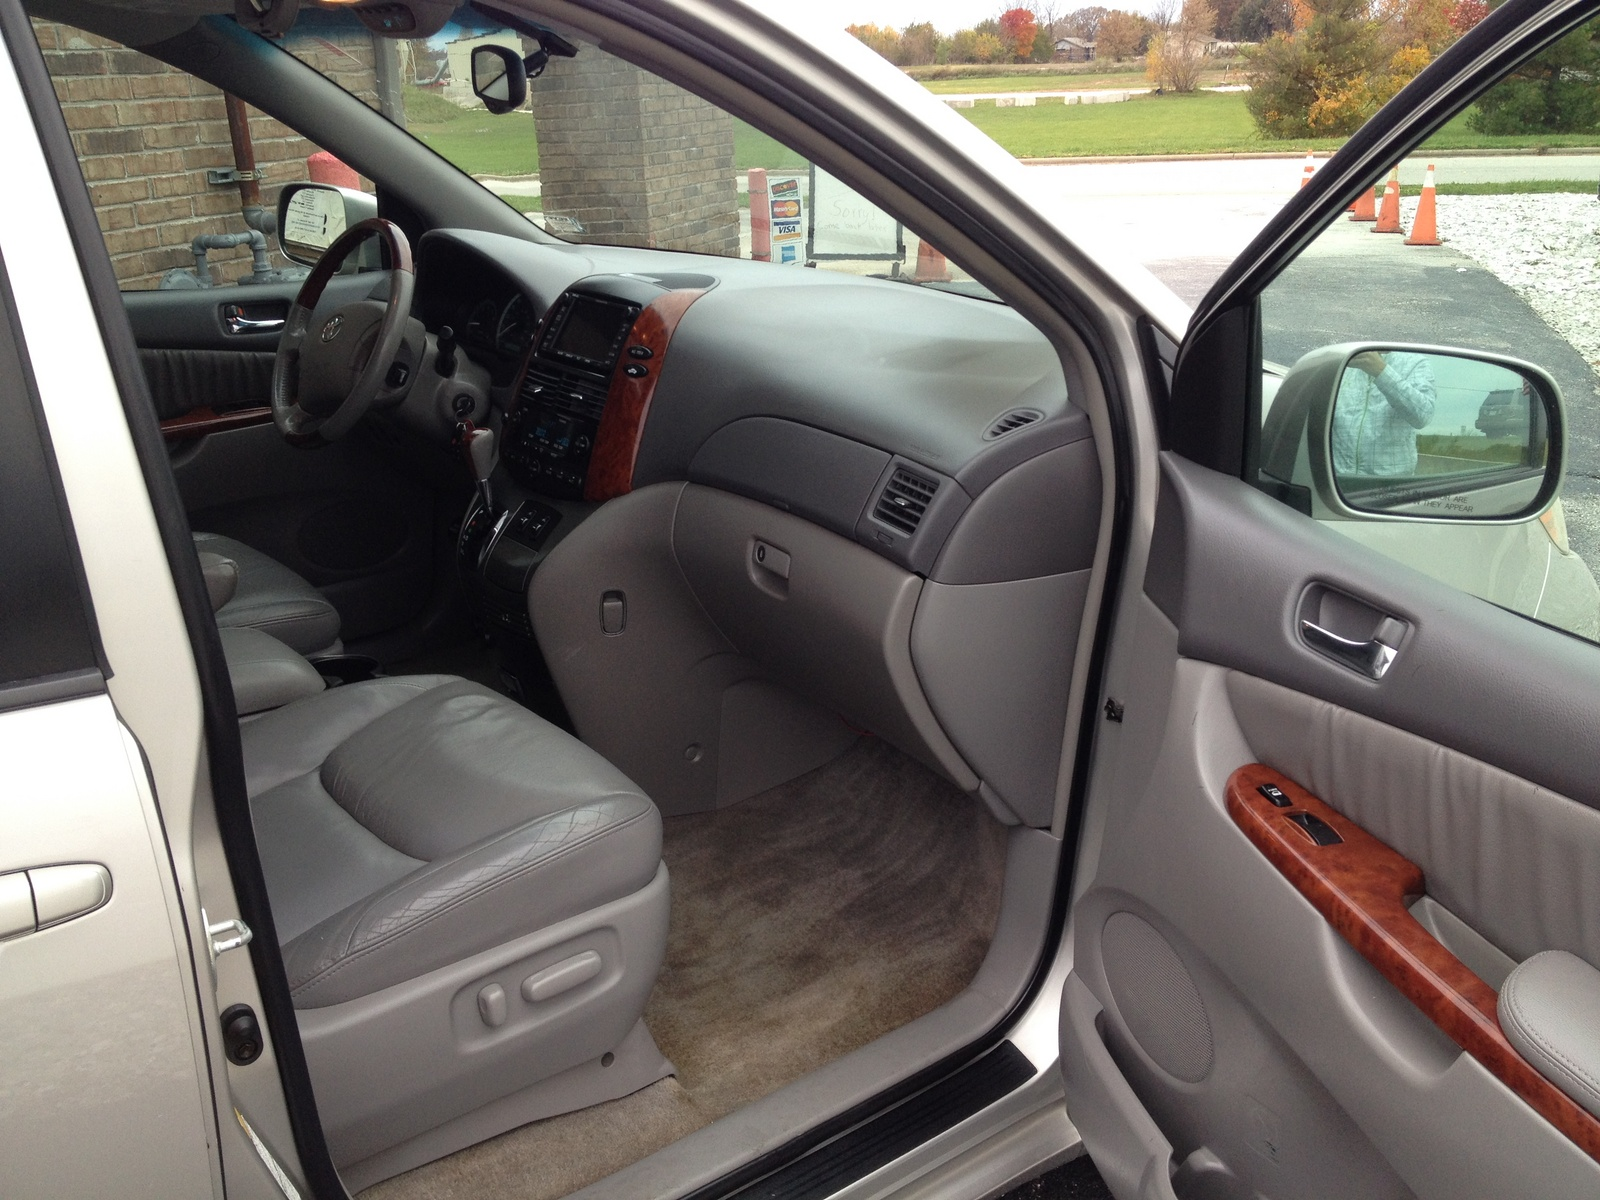 2010 Chrysler Town And Country Interior